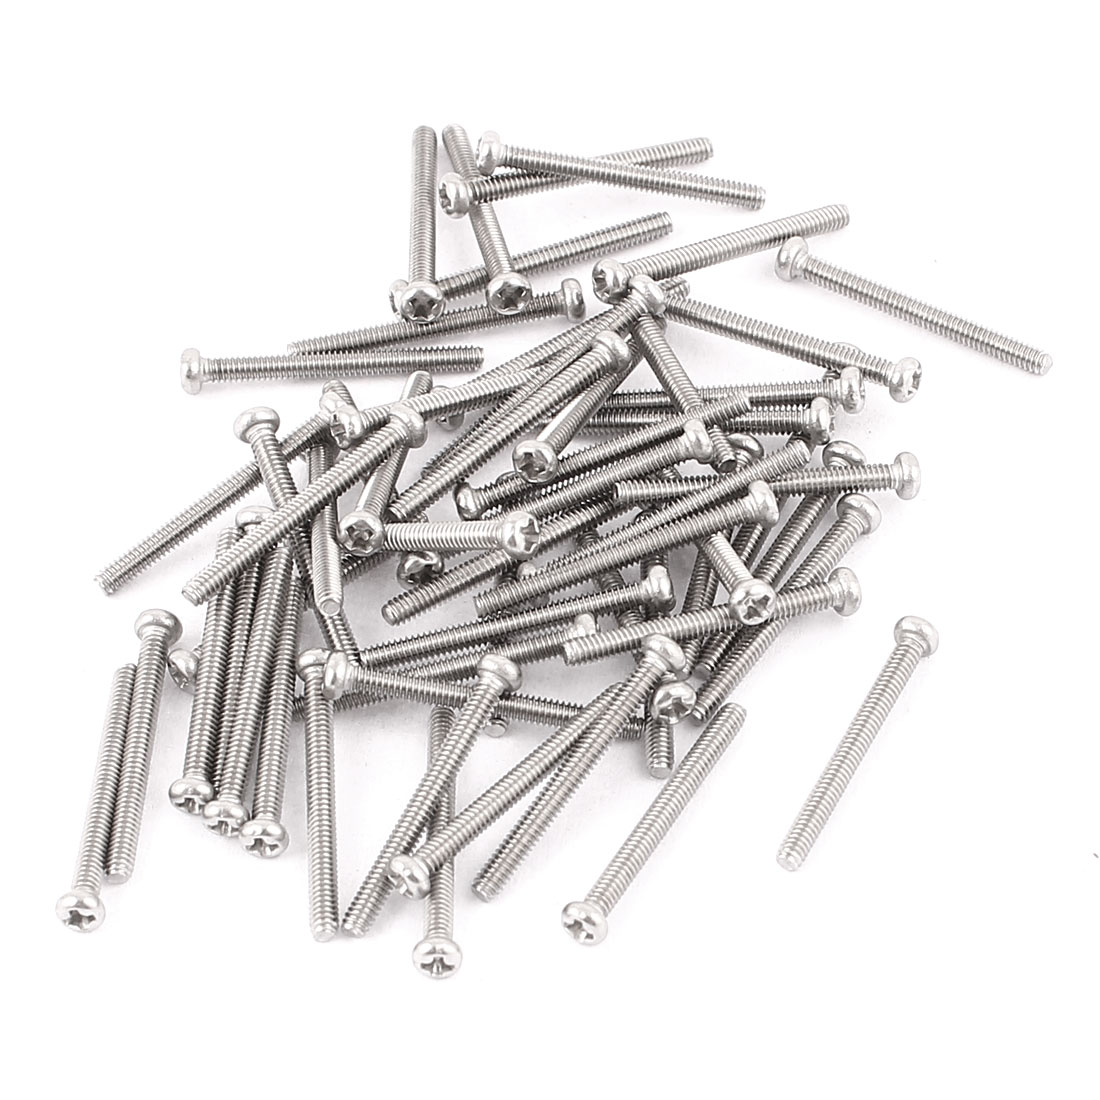 M2 x 20mm 304 Stainless Steel Crosshead Phillips Round Head Screws Bolt 60pcs